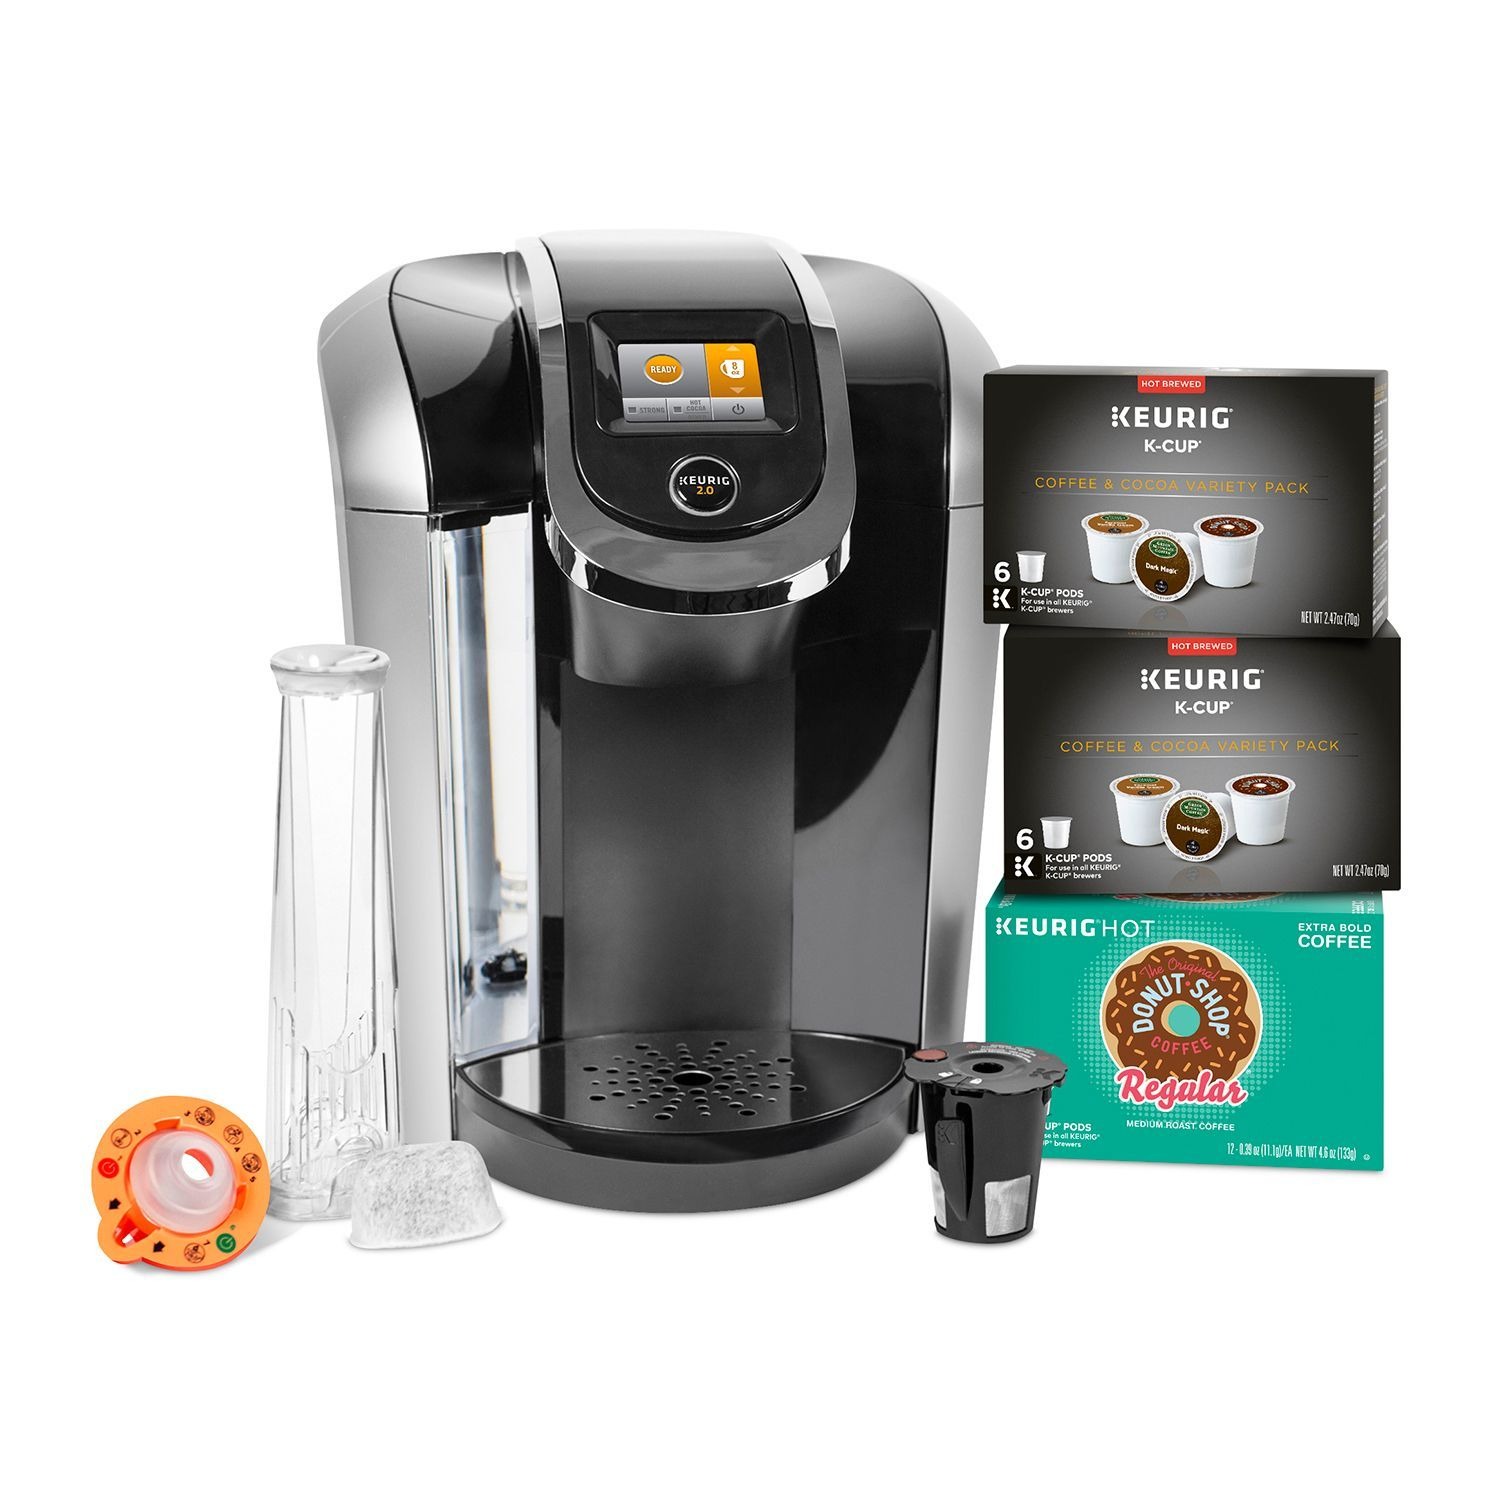 Keurig K425S Coffee Maker with 24 KCup Pods and Reusable